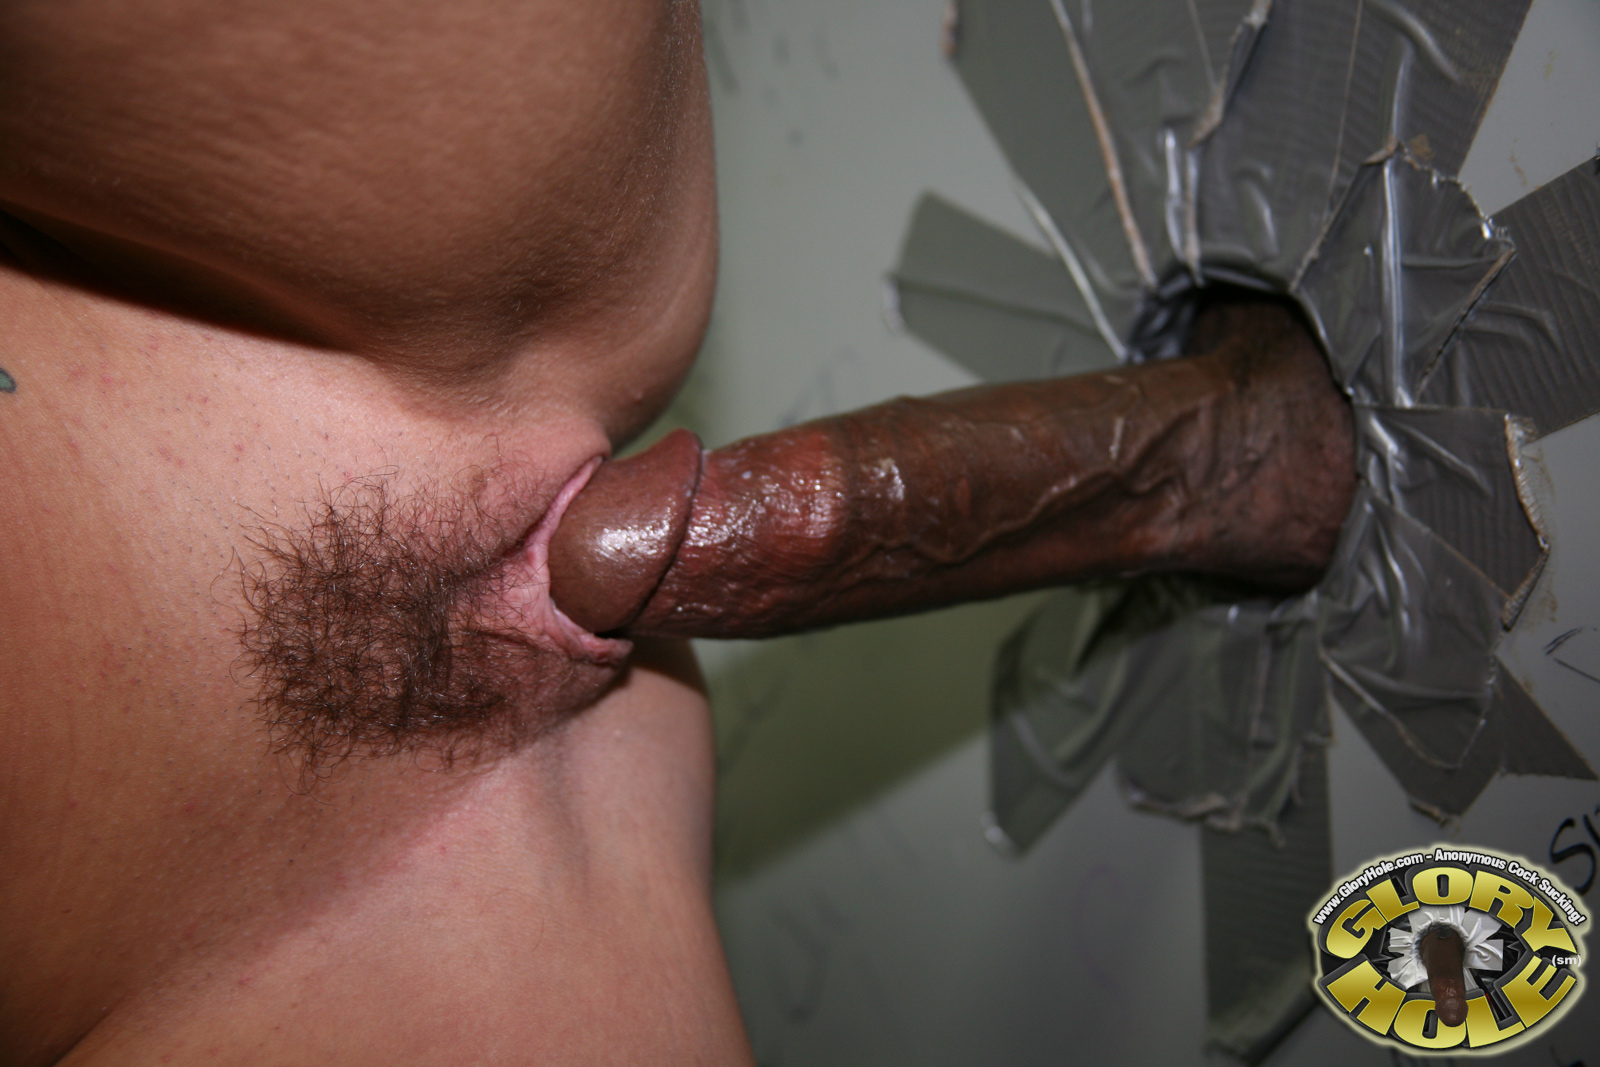 Chalifa Glory hole viedeos cute